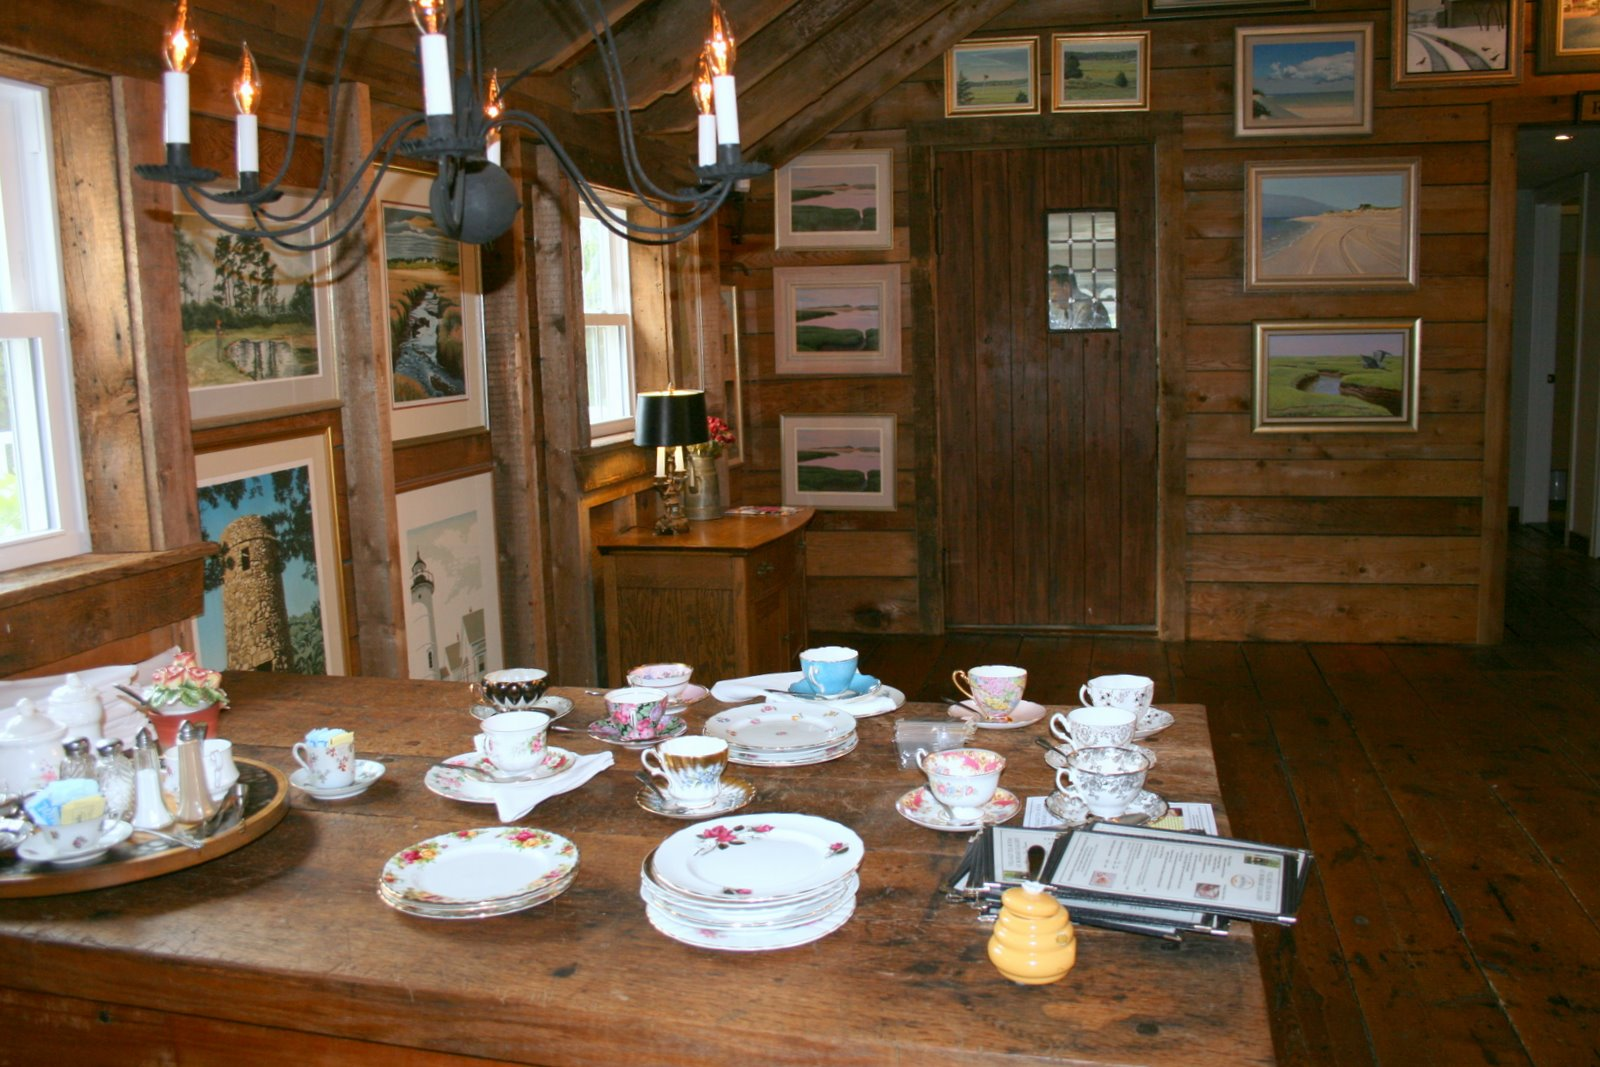 Borsari Gallery Tea Room